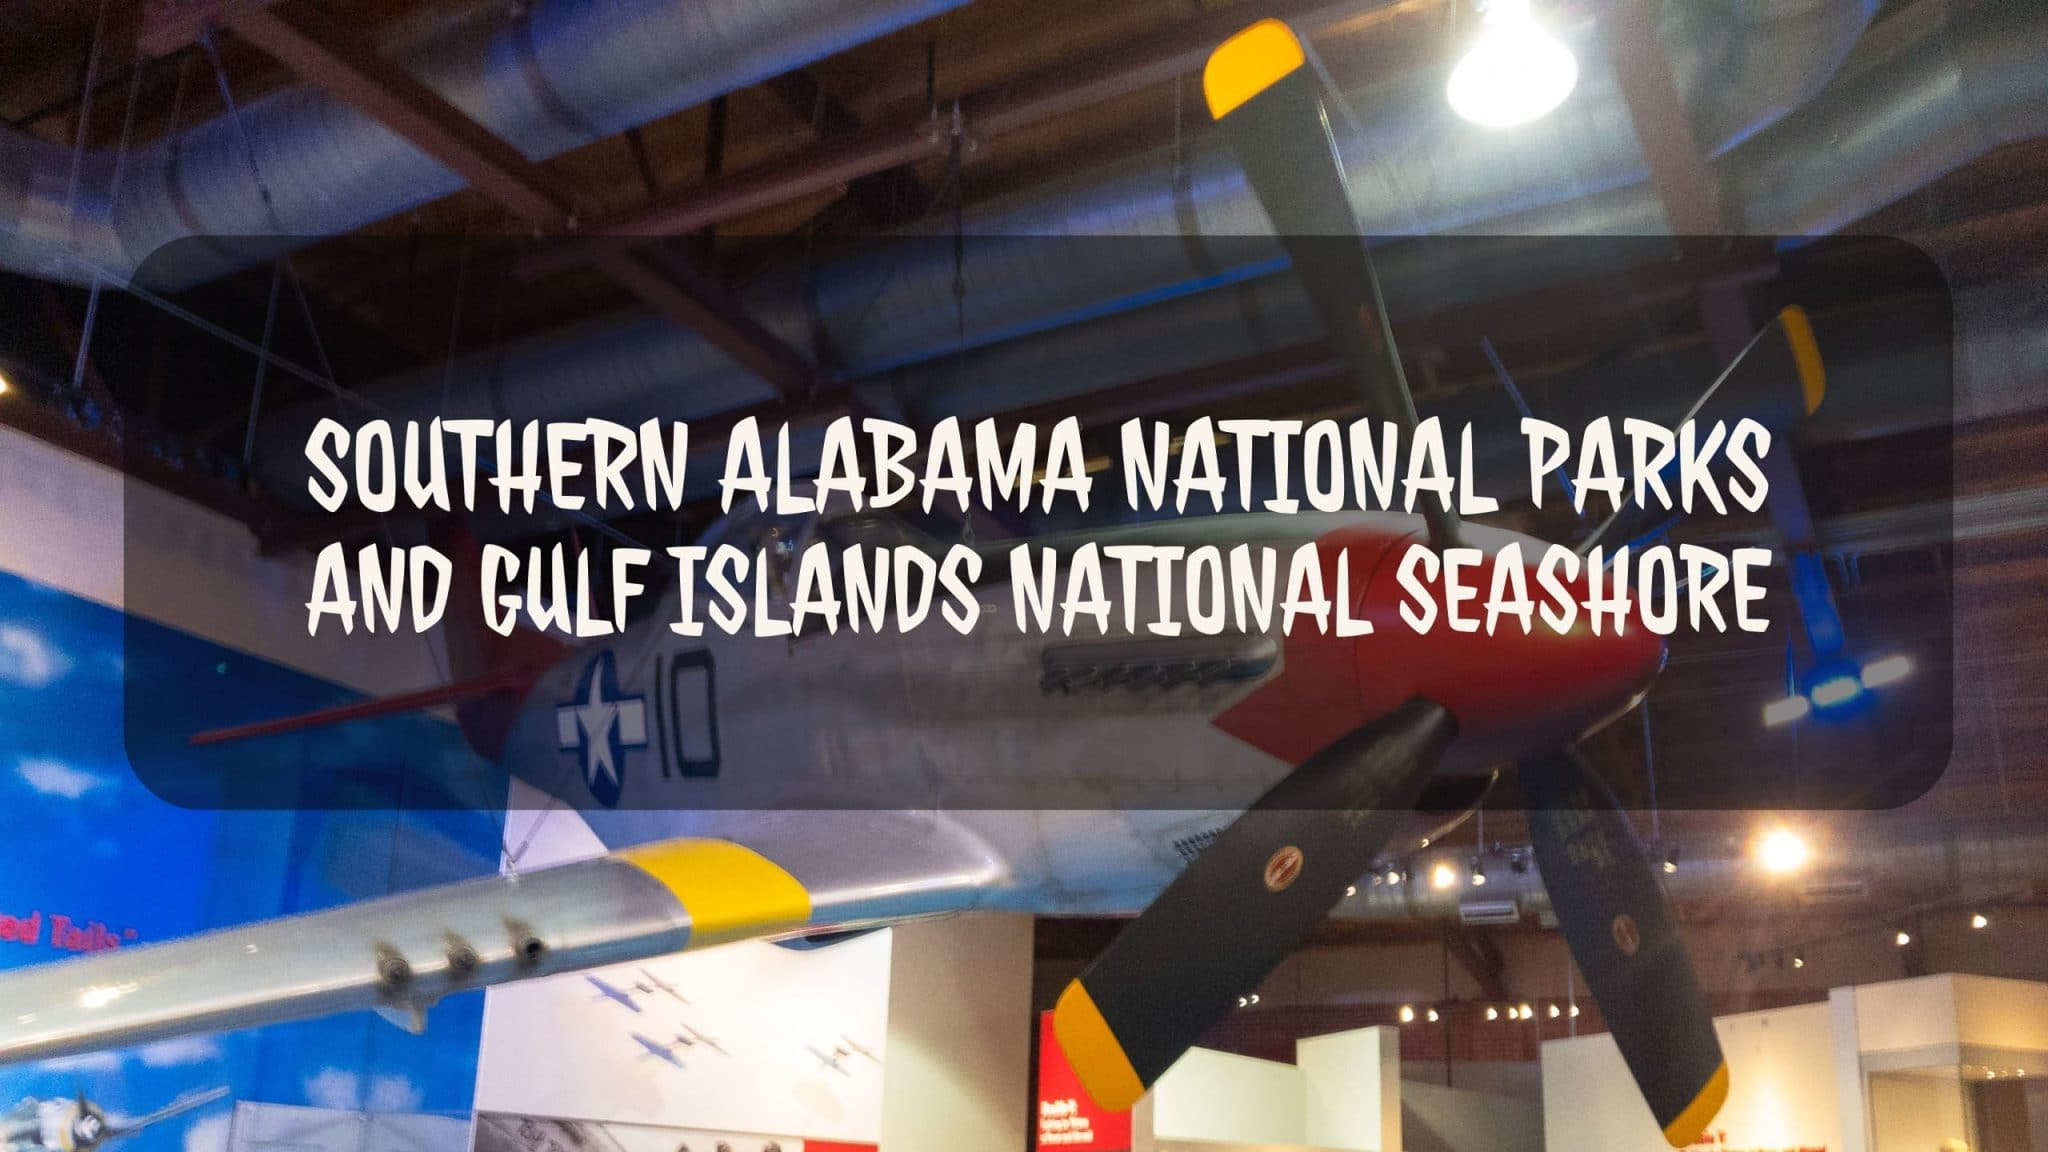 Southern Alabama National Parks and Gulf Islands National Seashore